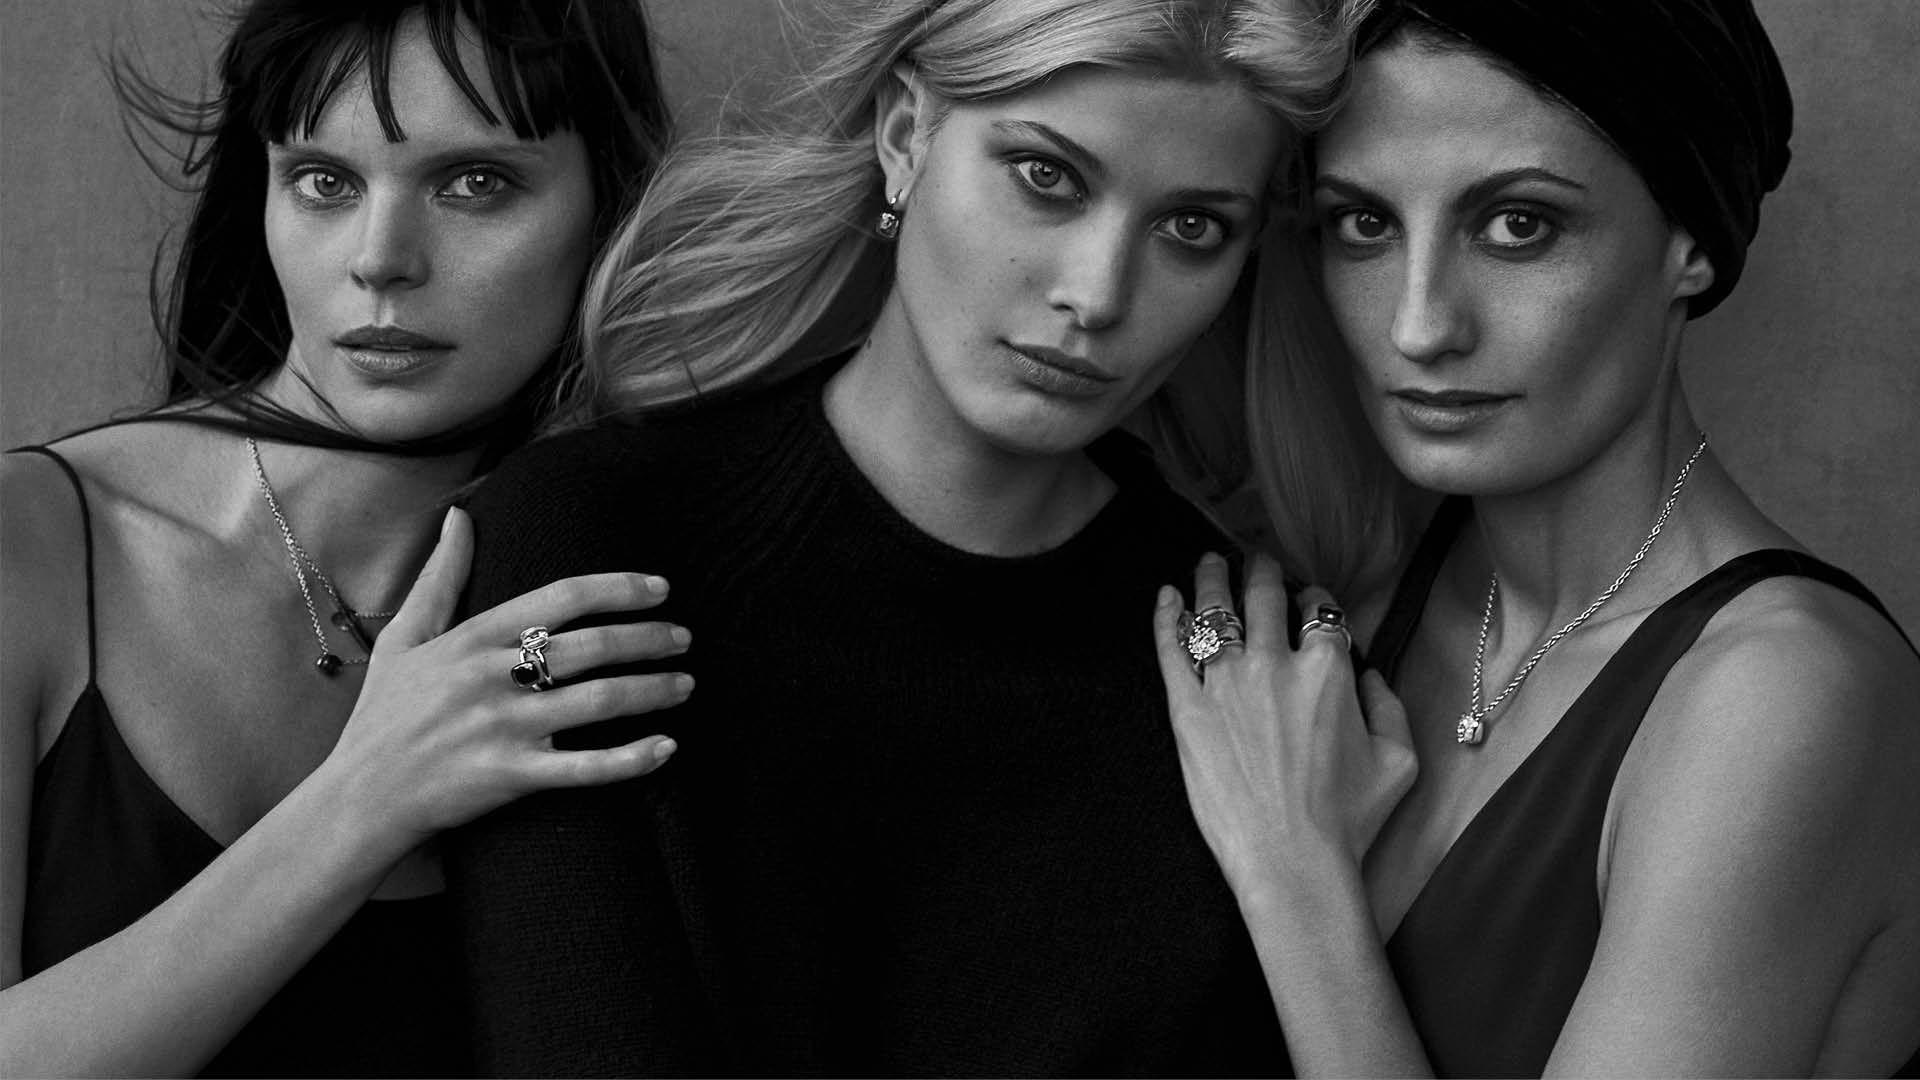 Pomellato campaign shot by Peter Lindbergh